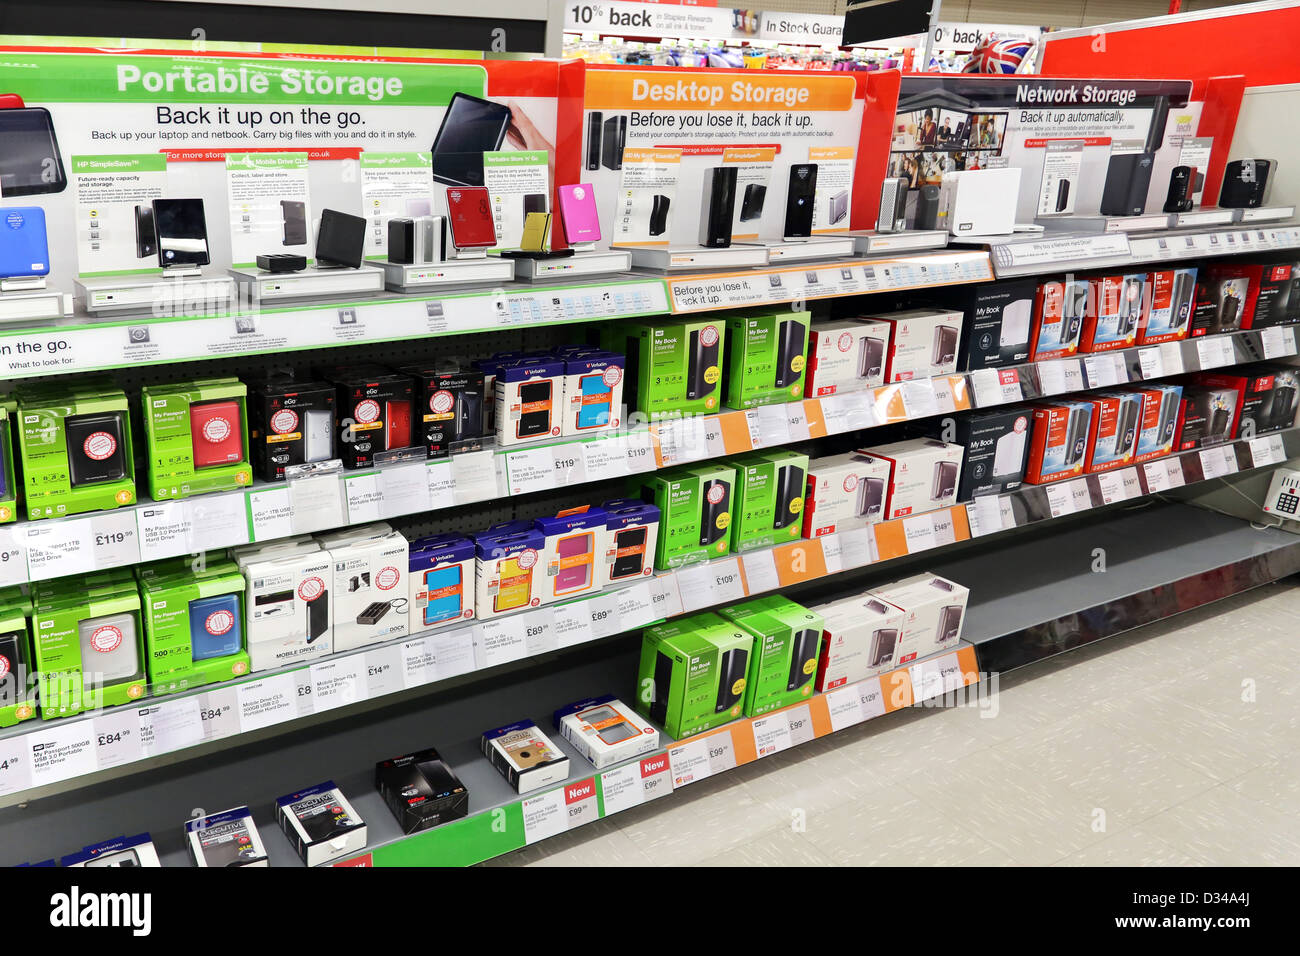 Portable, Desktop And Network Storage Hard Drives On Sale In Shop Stock Photo